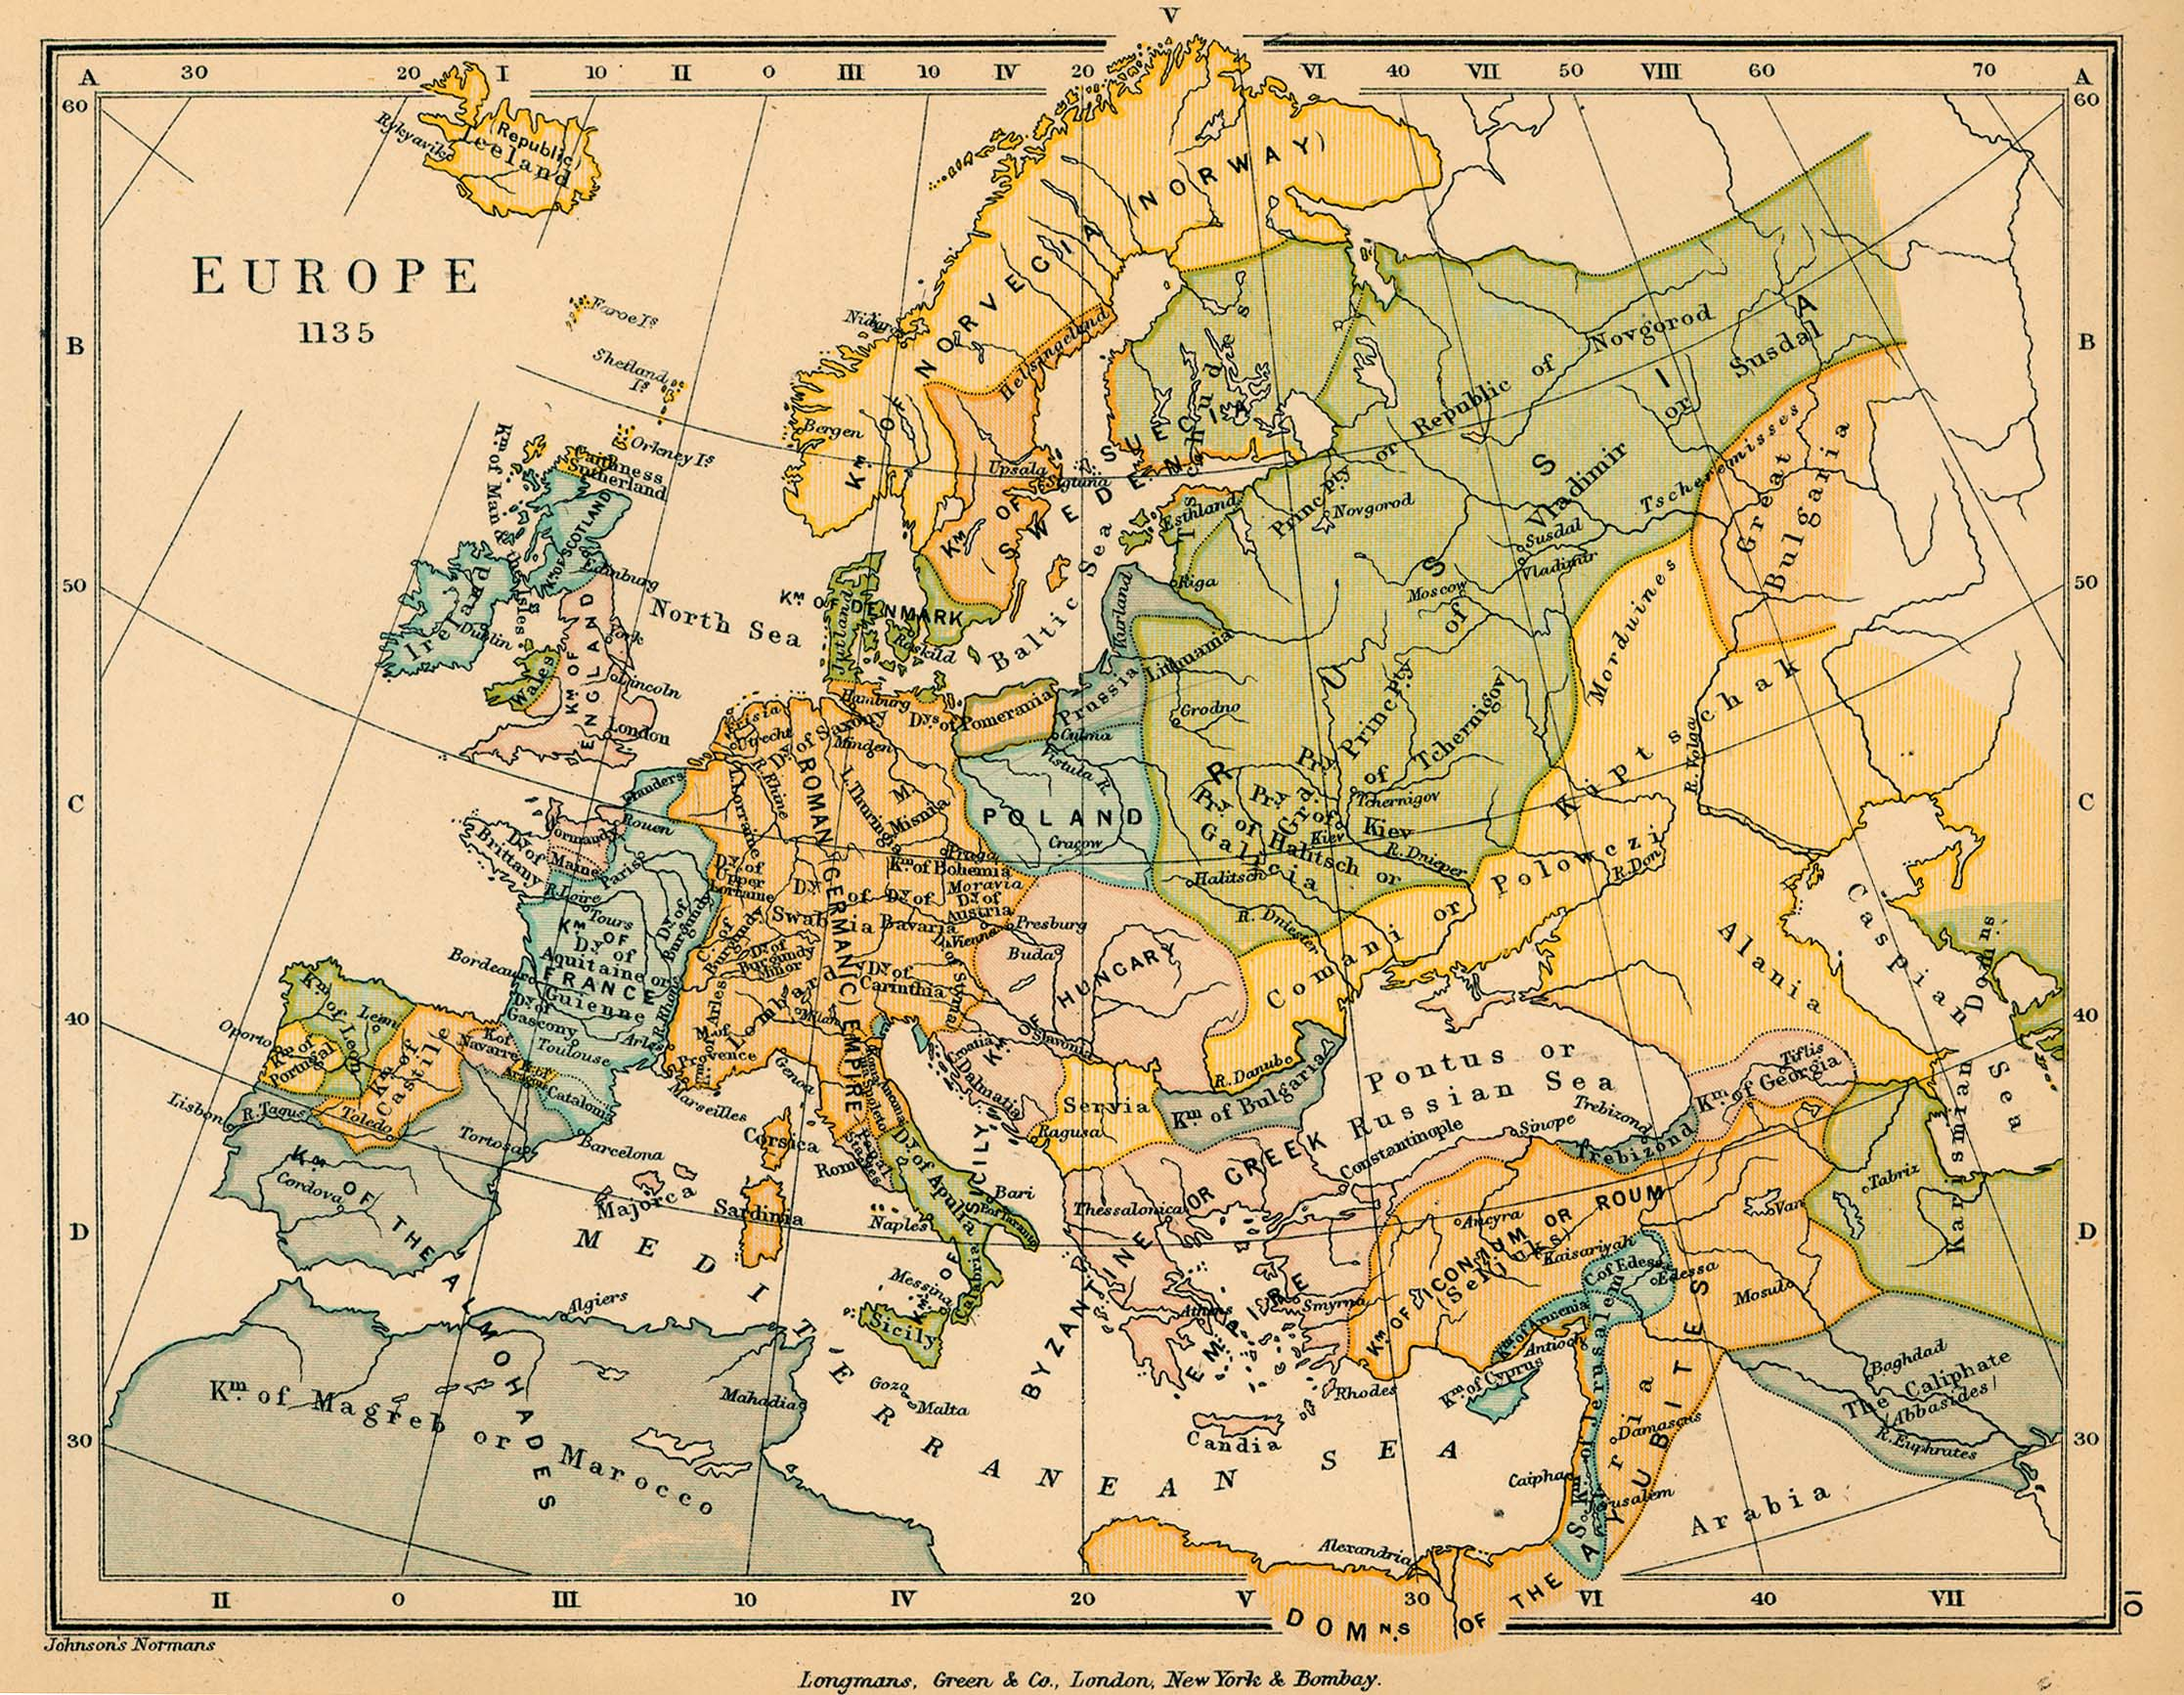 Europe in 1135